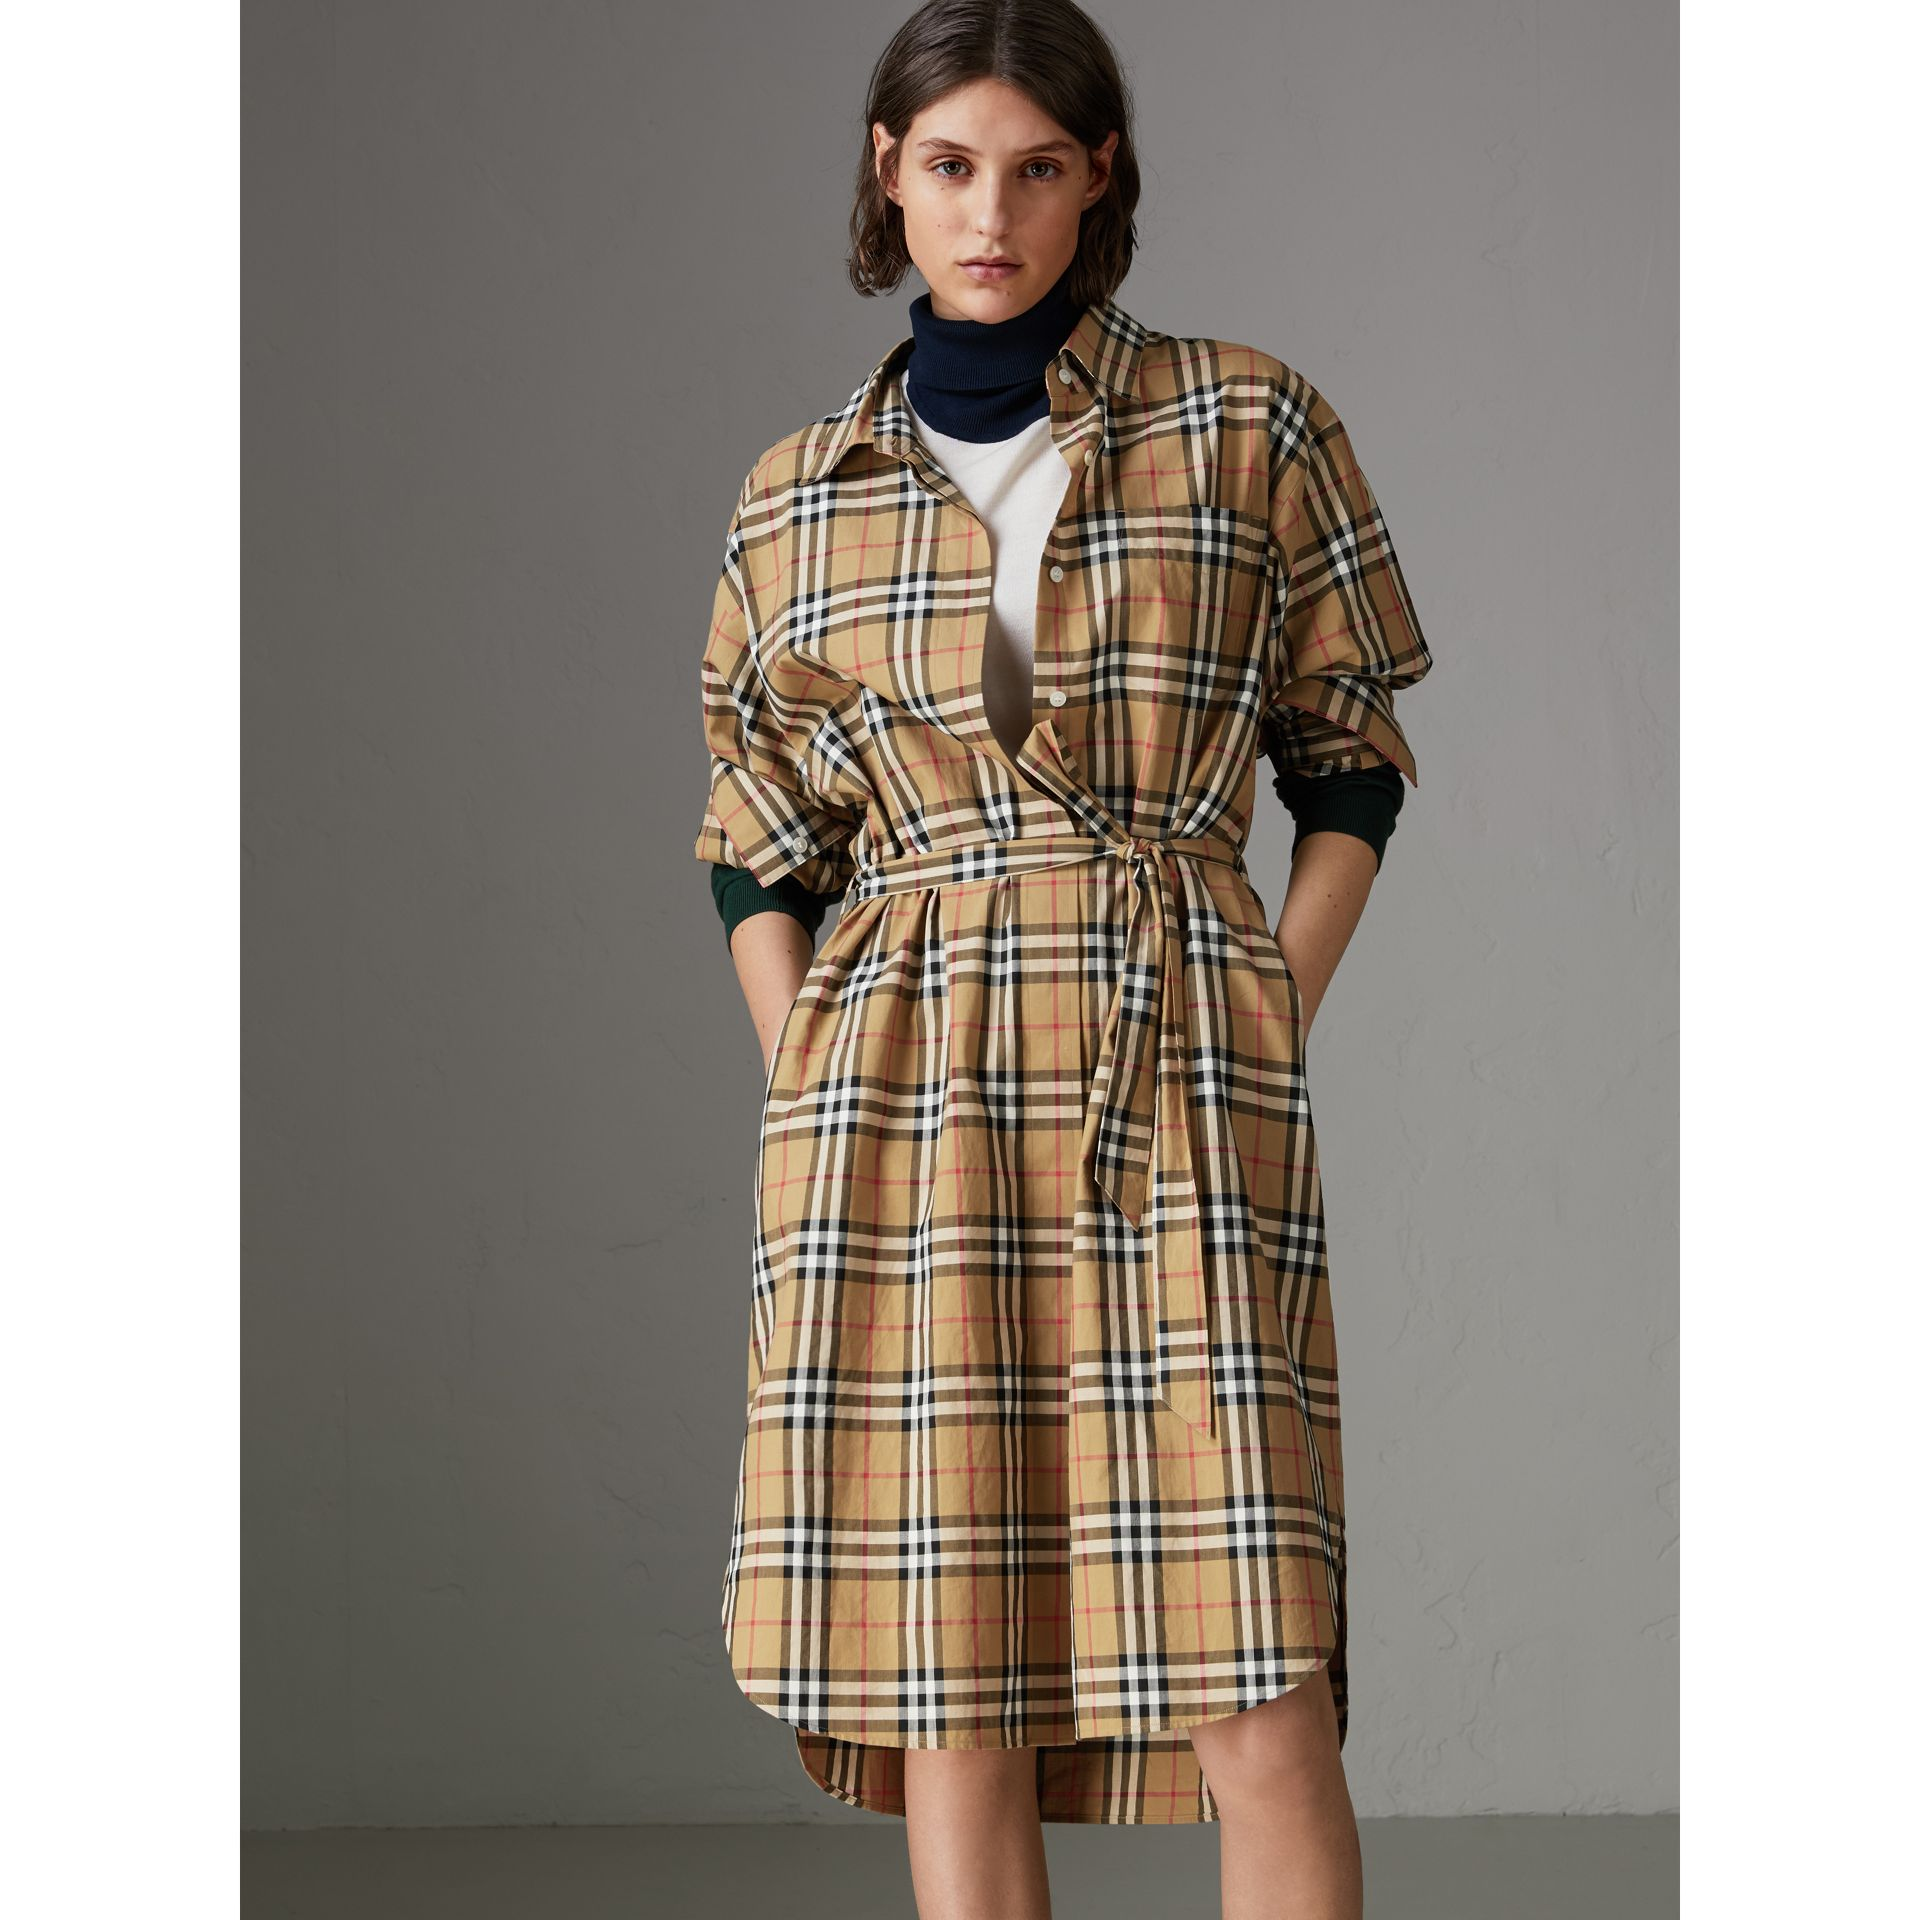 Tie-waist Vintage Check Cotton Shirt Dress in Antique Yellow - Women | Burberry United States - gallery image 3